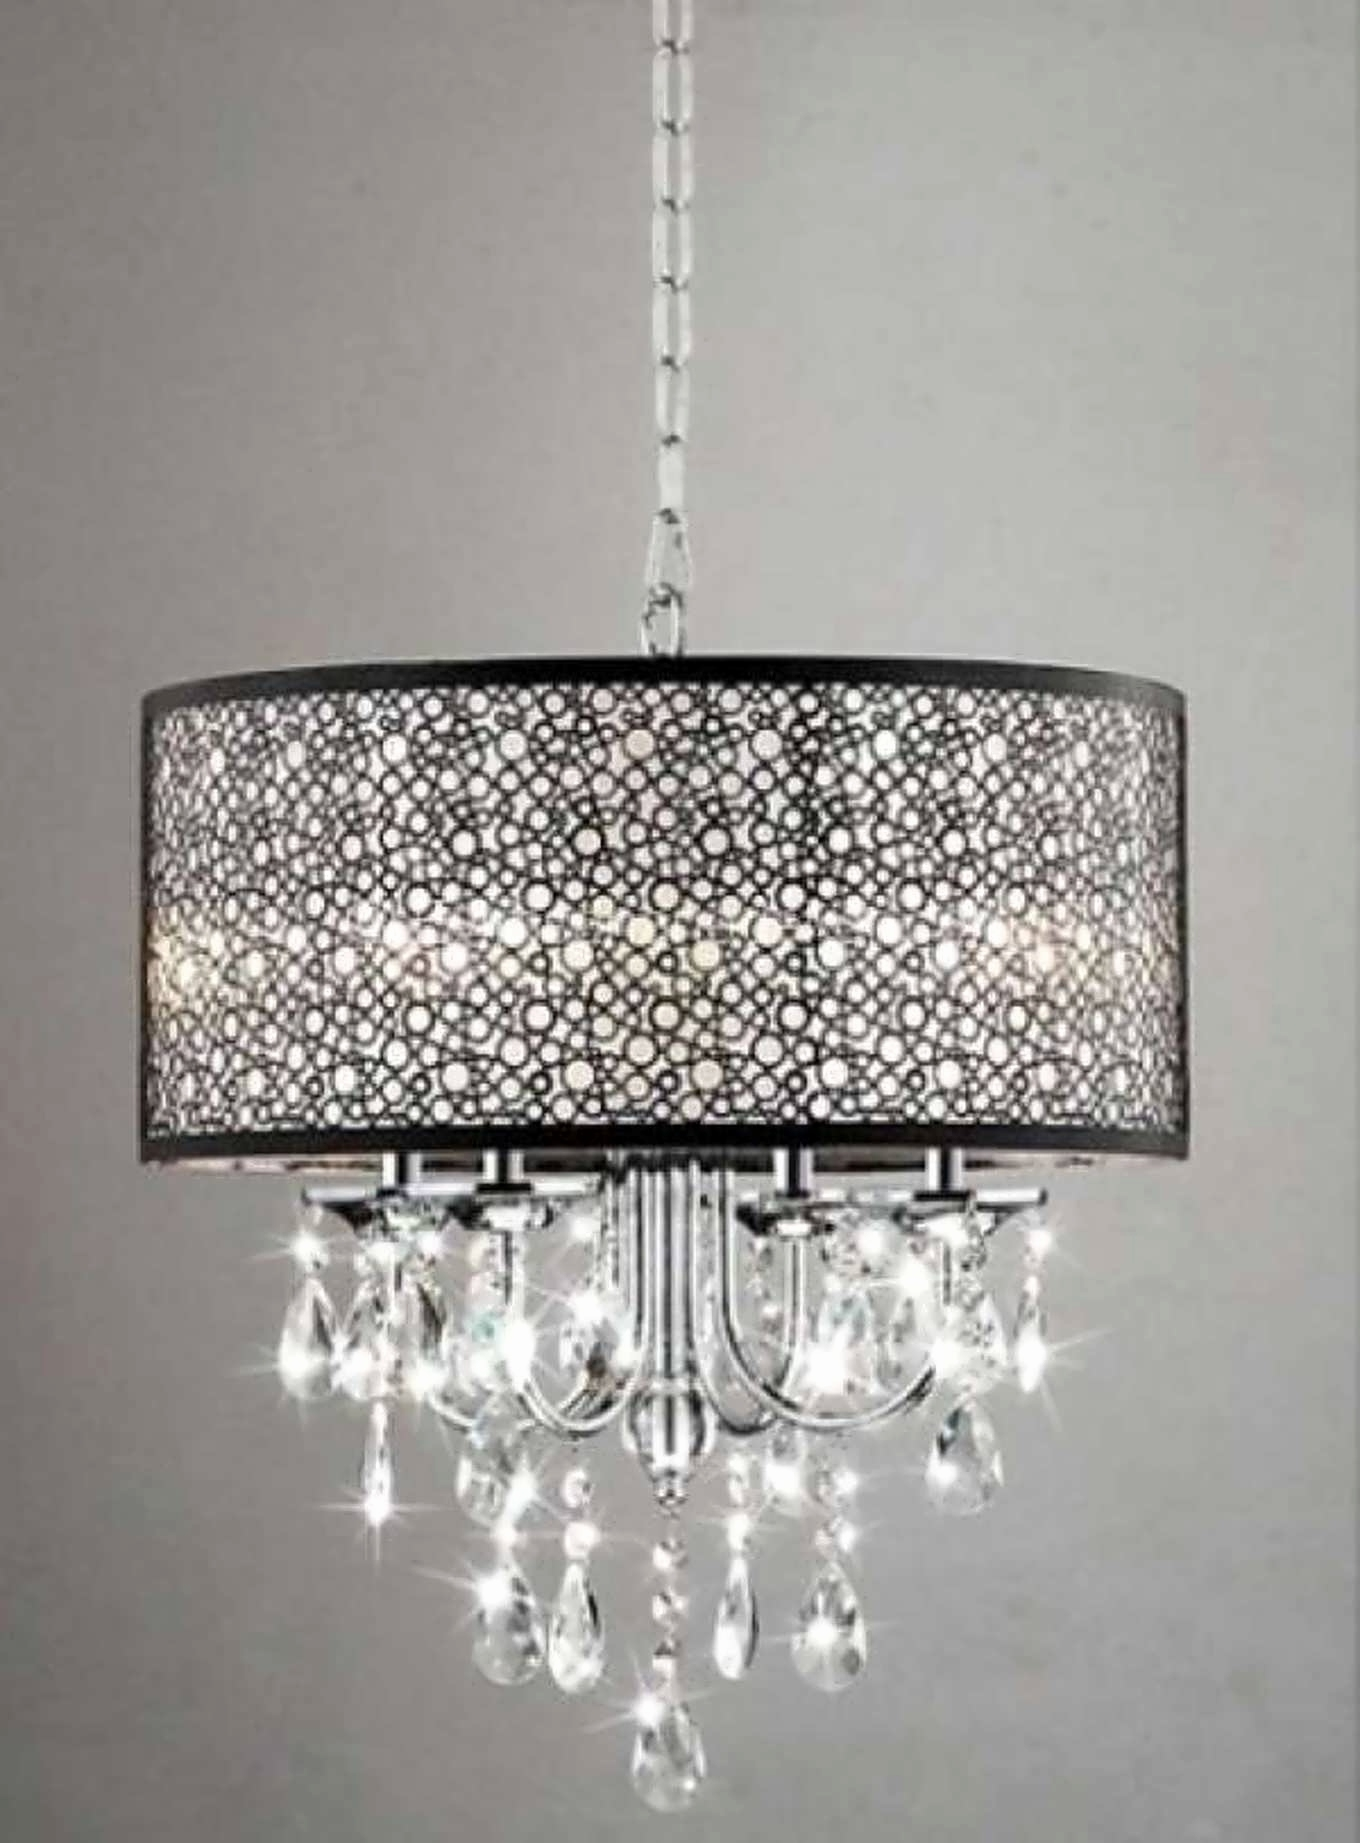 Famous 12 Light Chandelier Costco – Chandelier Designs With Costco Lighting Chandeliers (View 11 of 20)